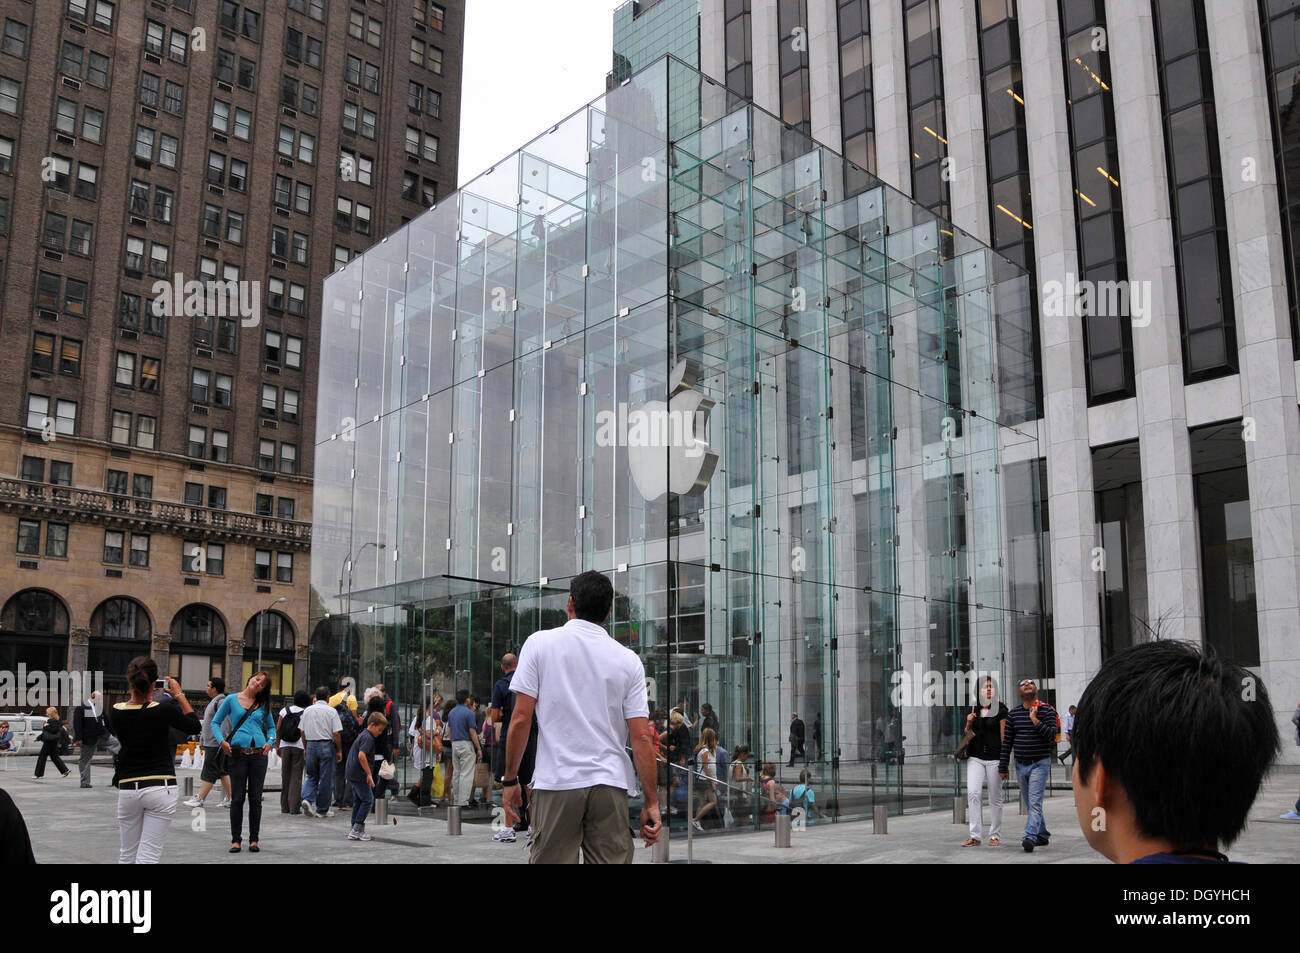 the success of an apple retail store in america It was the first successful personal computer company and the popularizer of   with room to store and manipulate data, the apple ii became the.